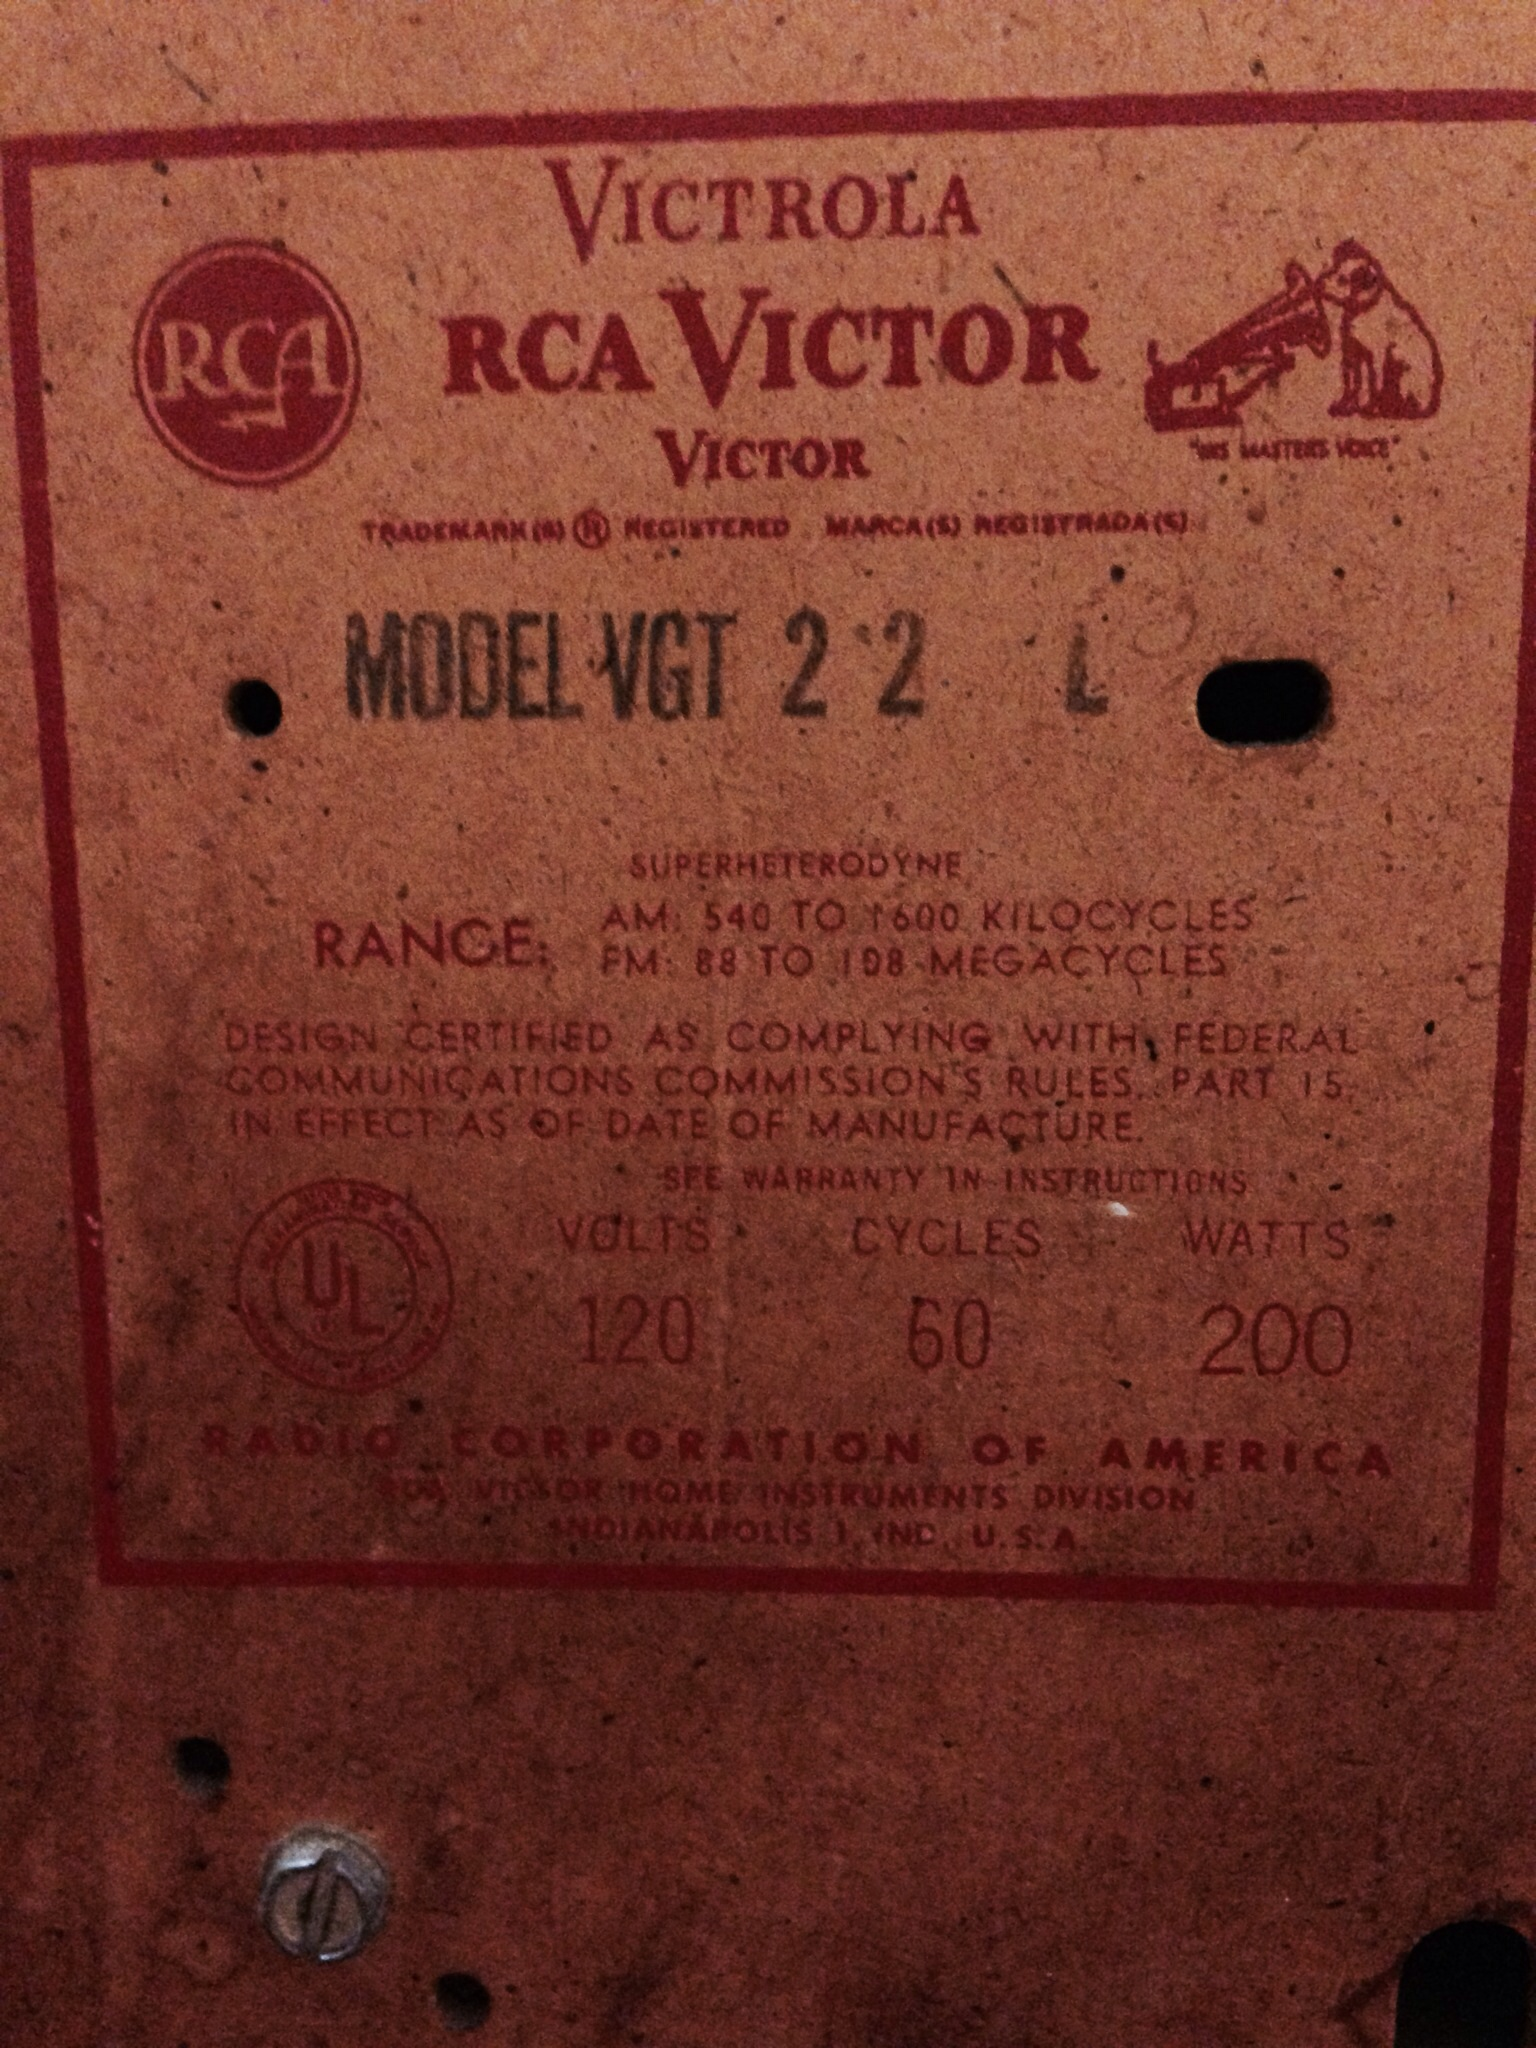 Vintage RCA Victrola New Vista record player antique appraisal